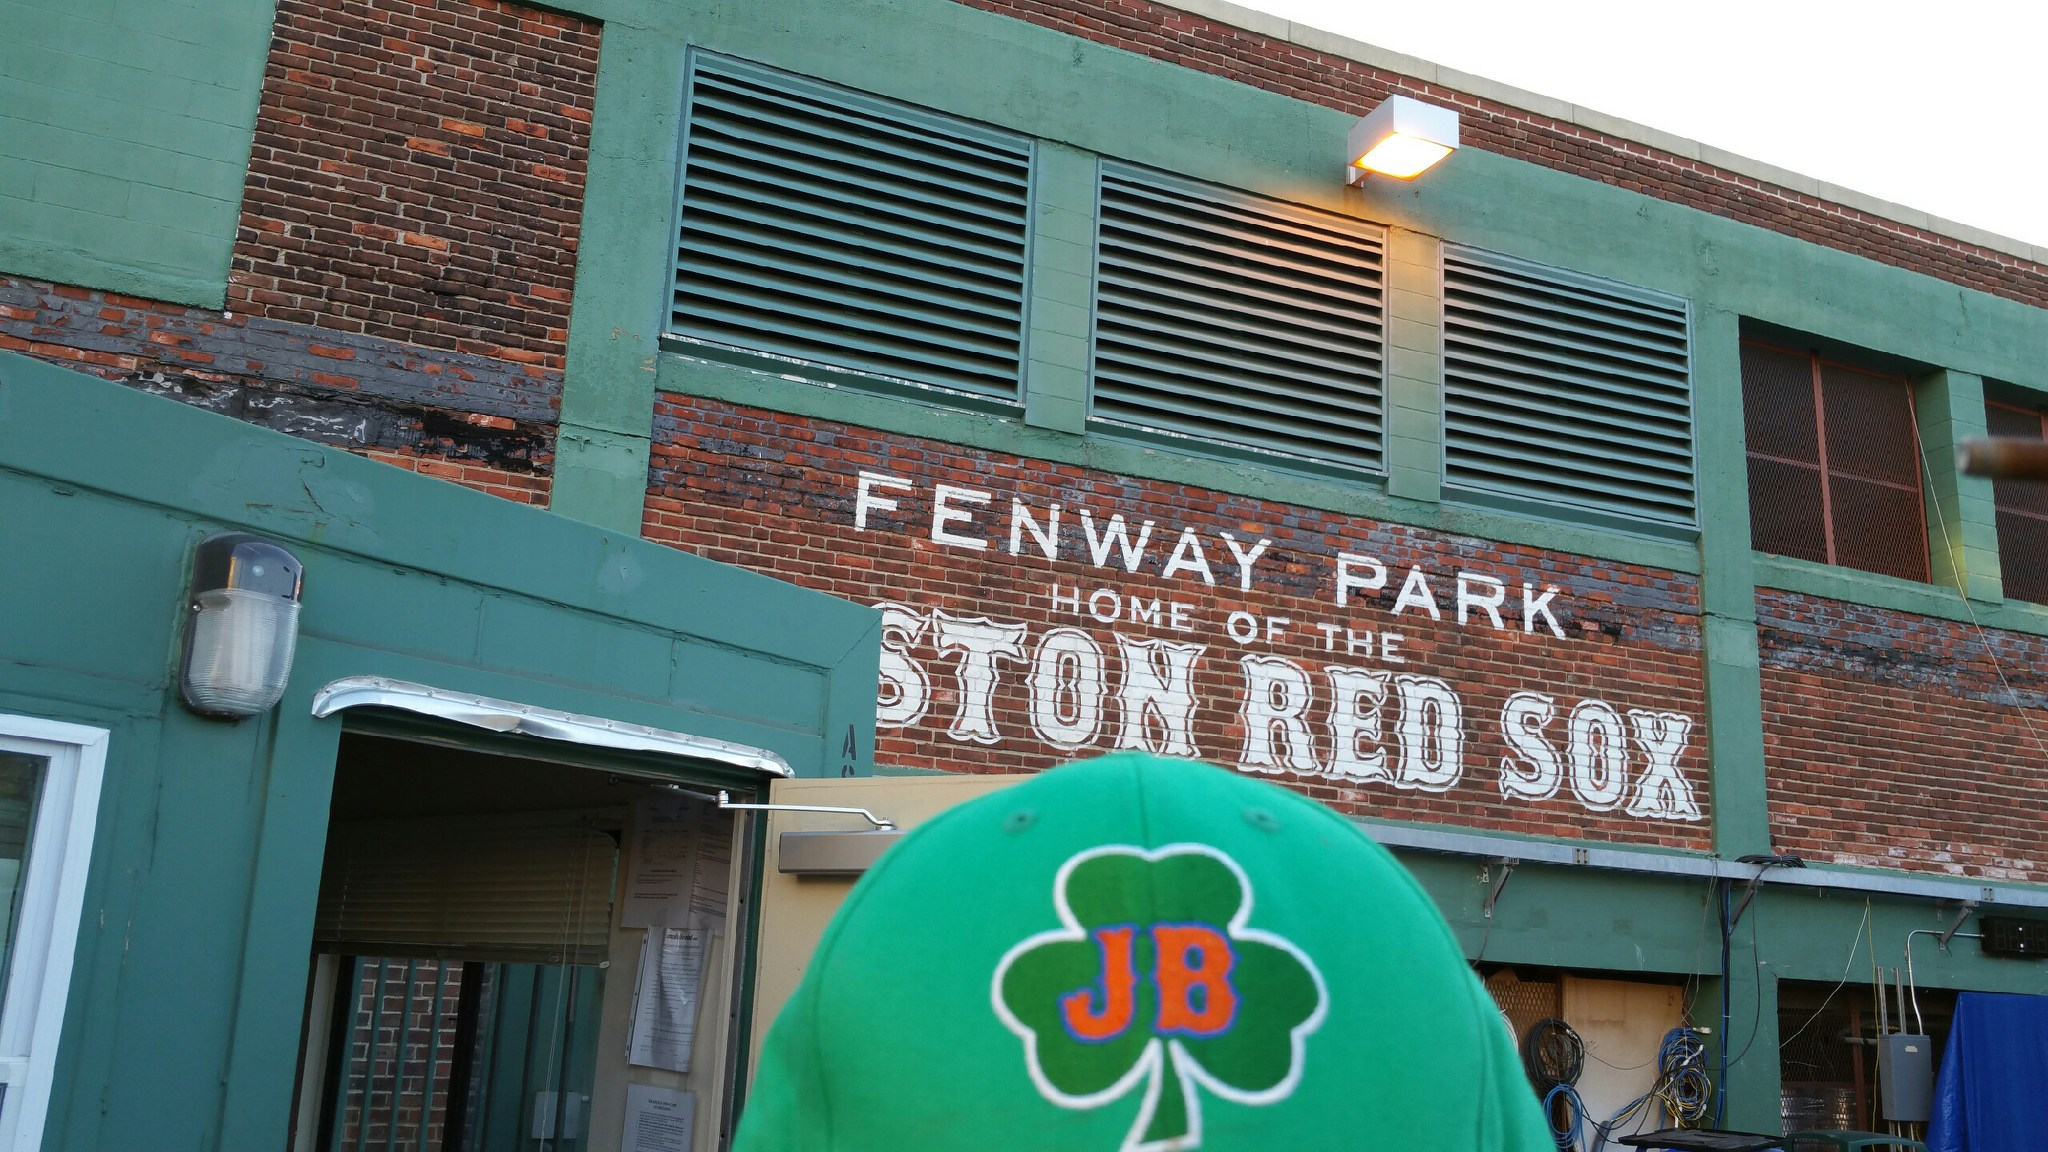 Fenway Park, Boston - Rob T